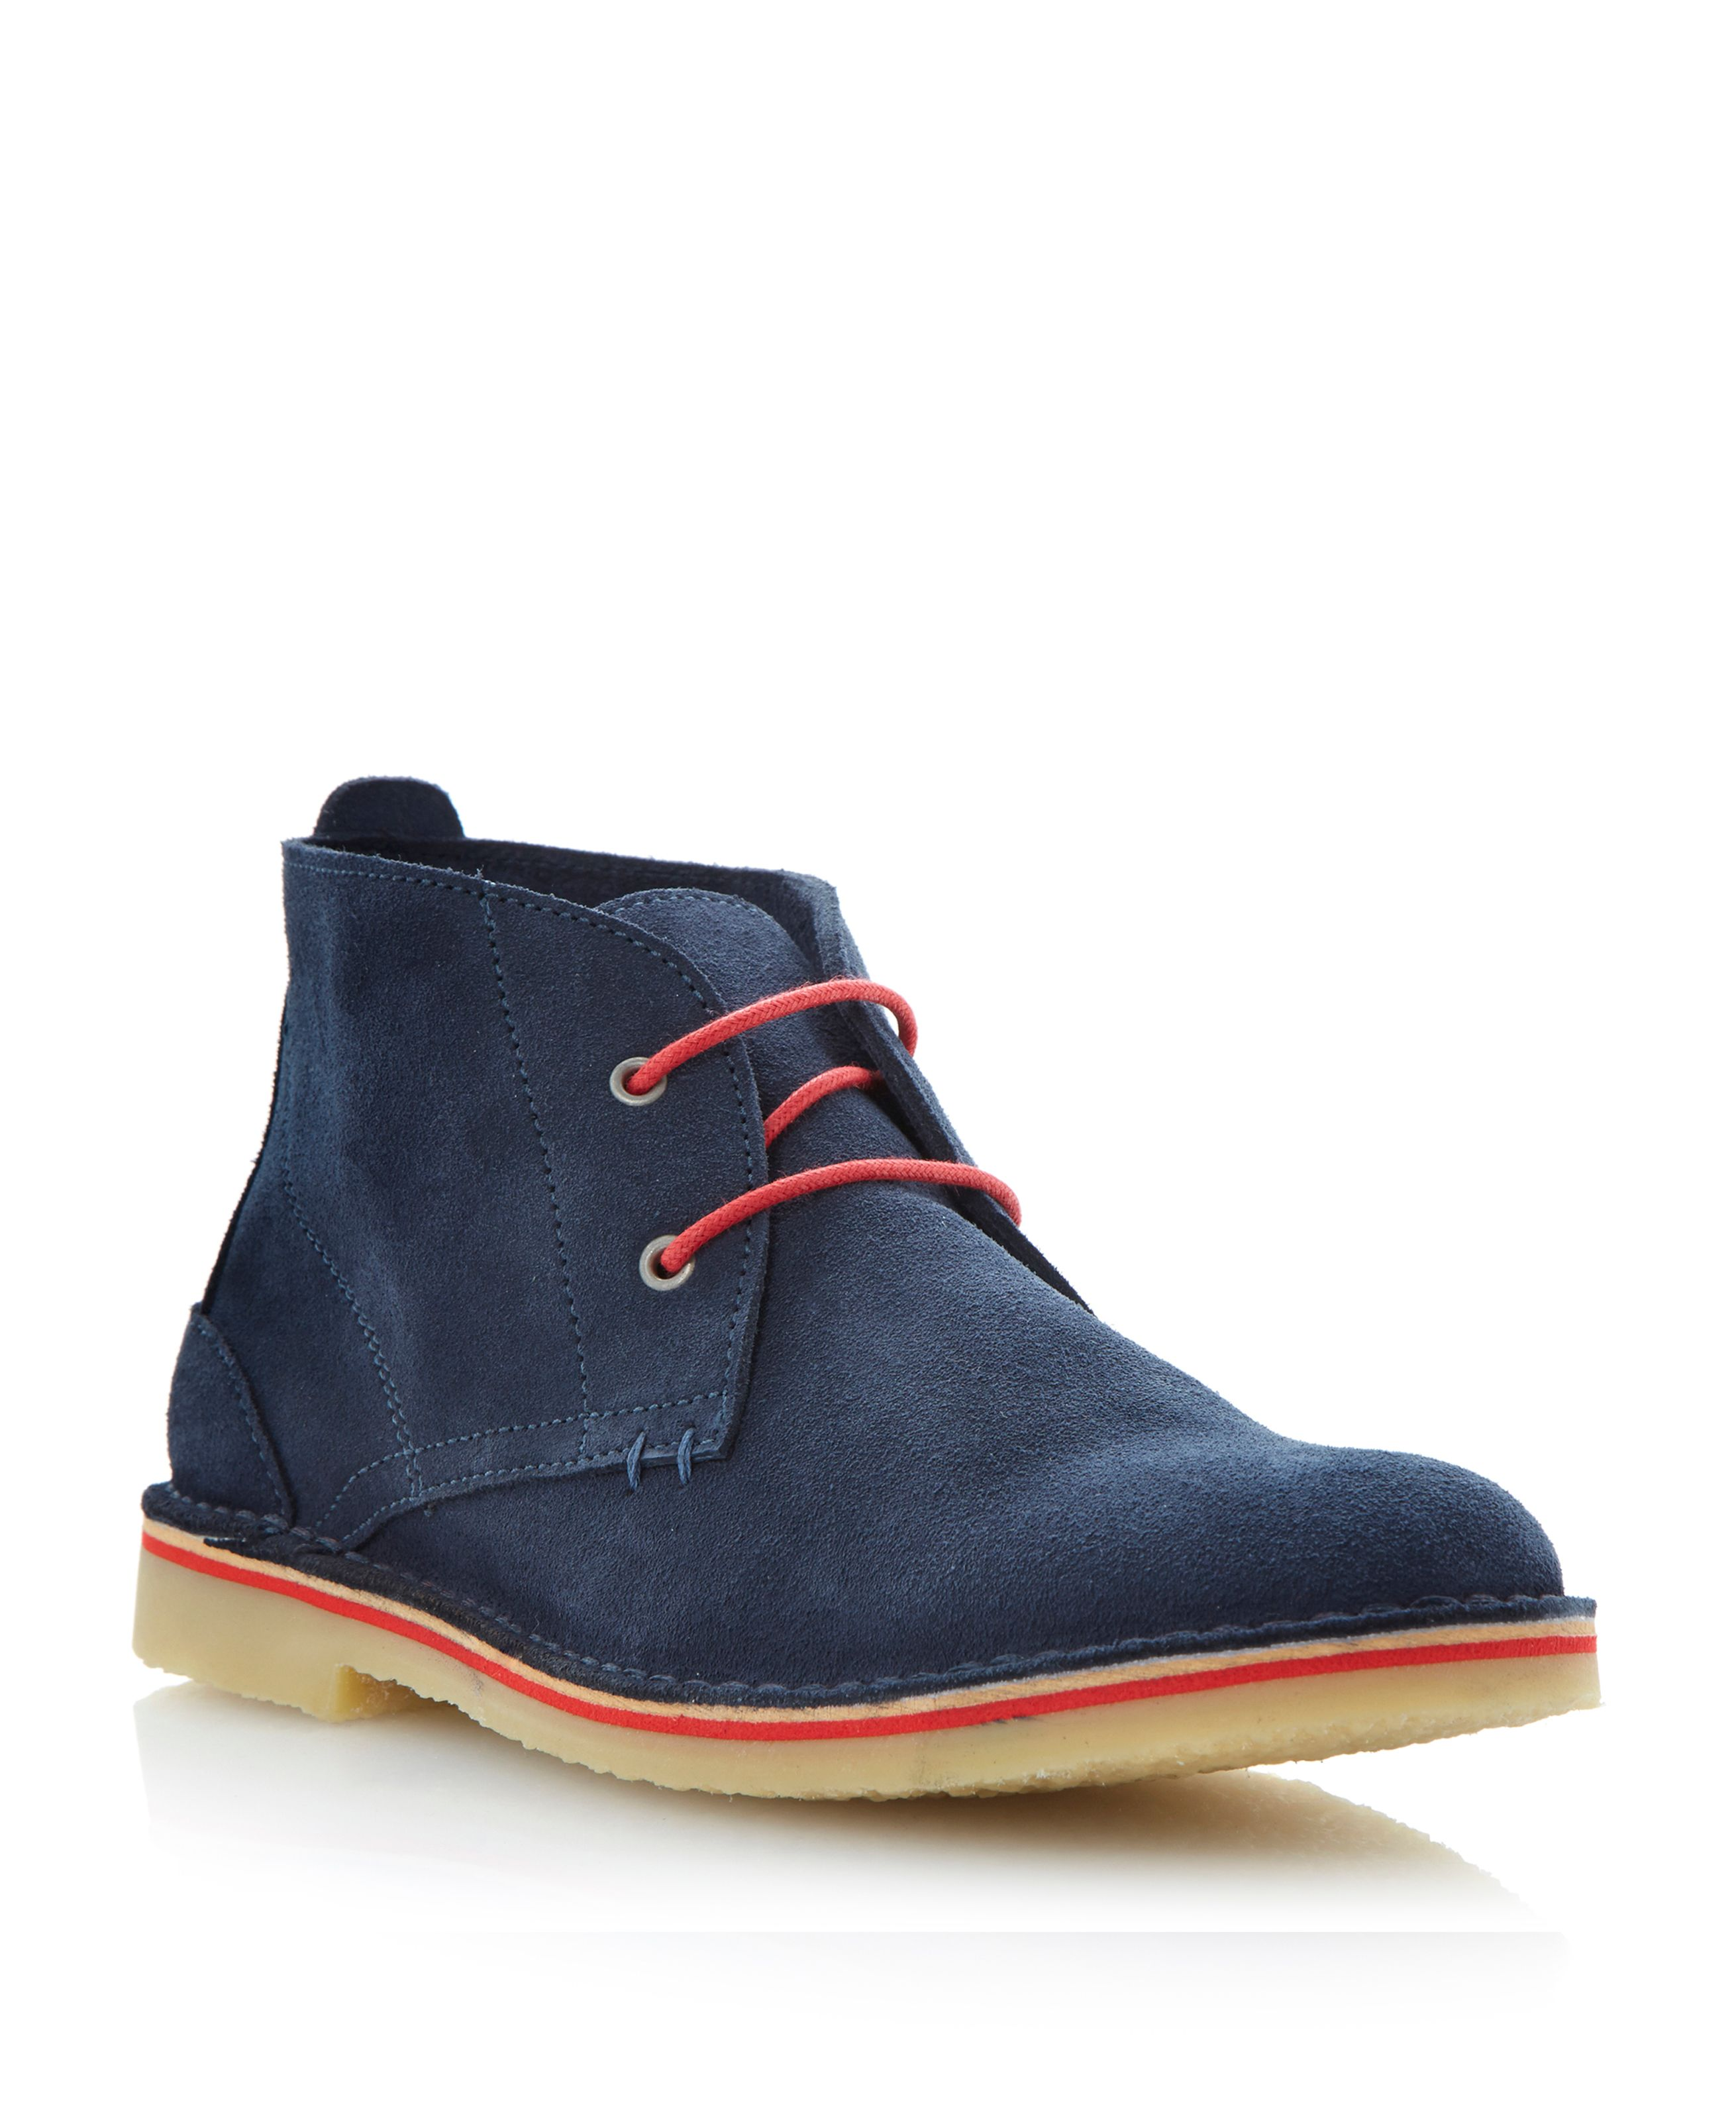 Cody lace up colour pop desert boots